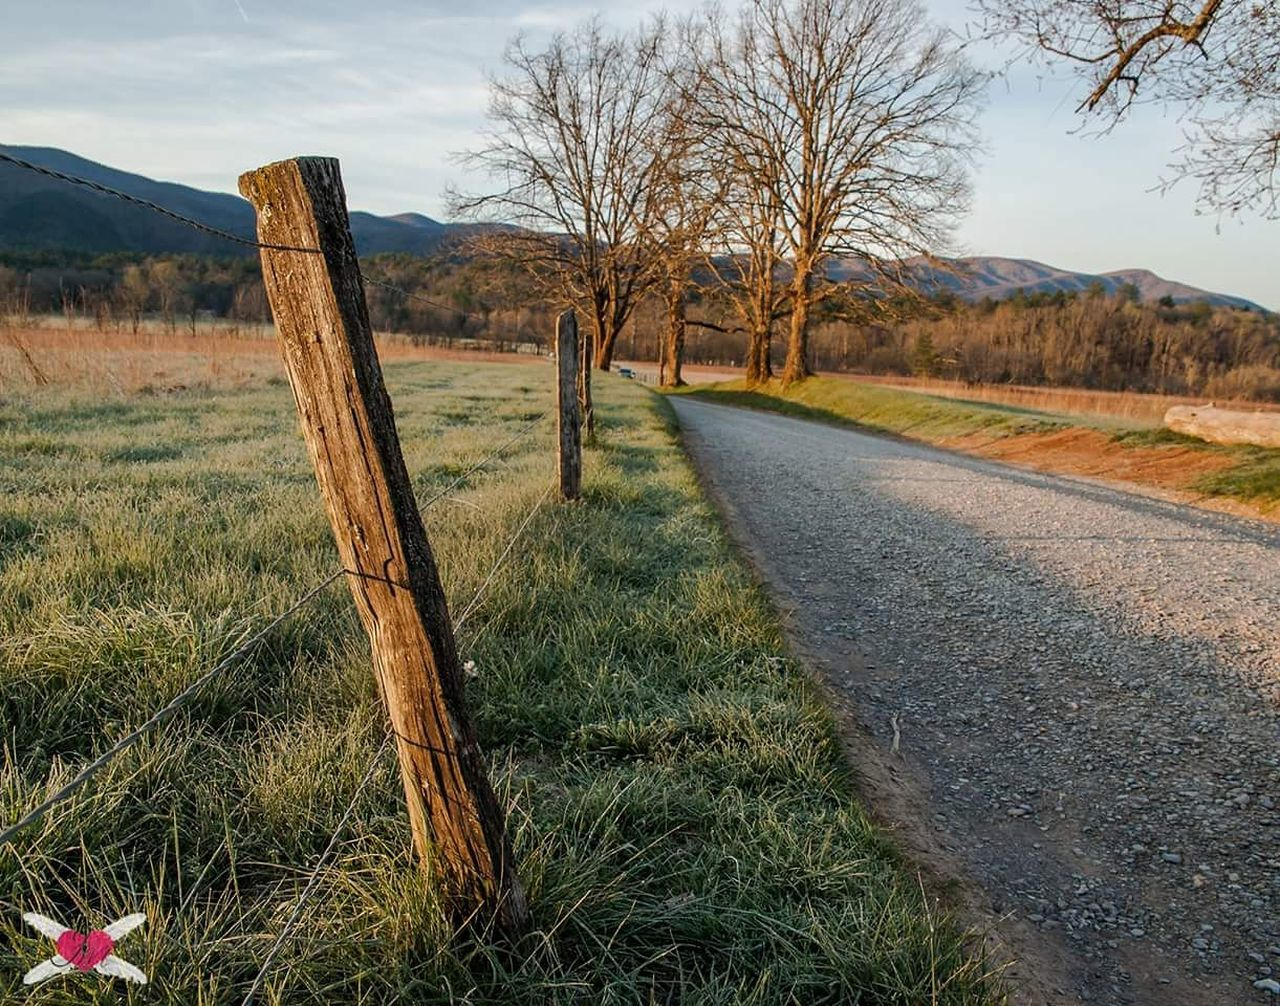 Empty Road By Fence On Grassy Field